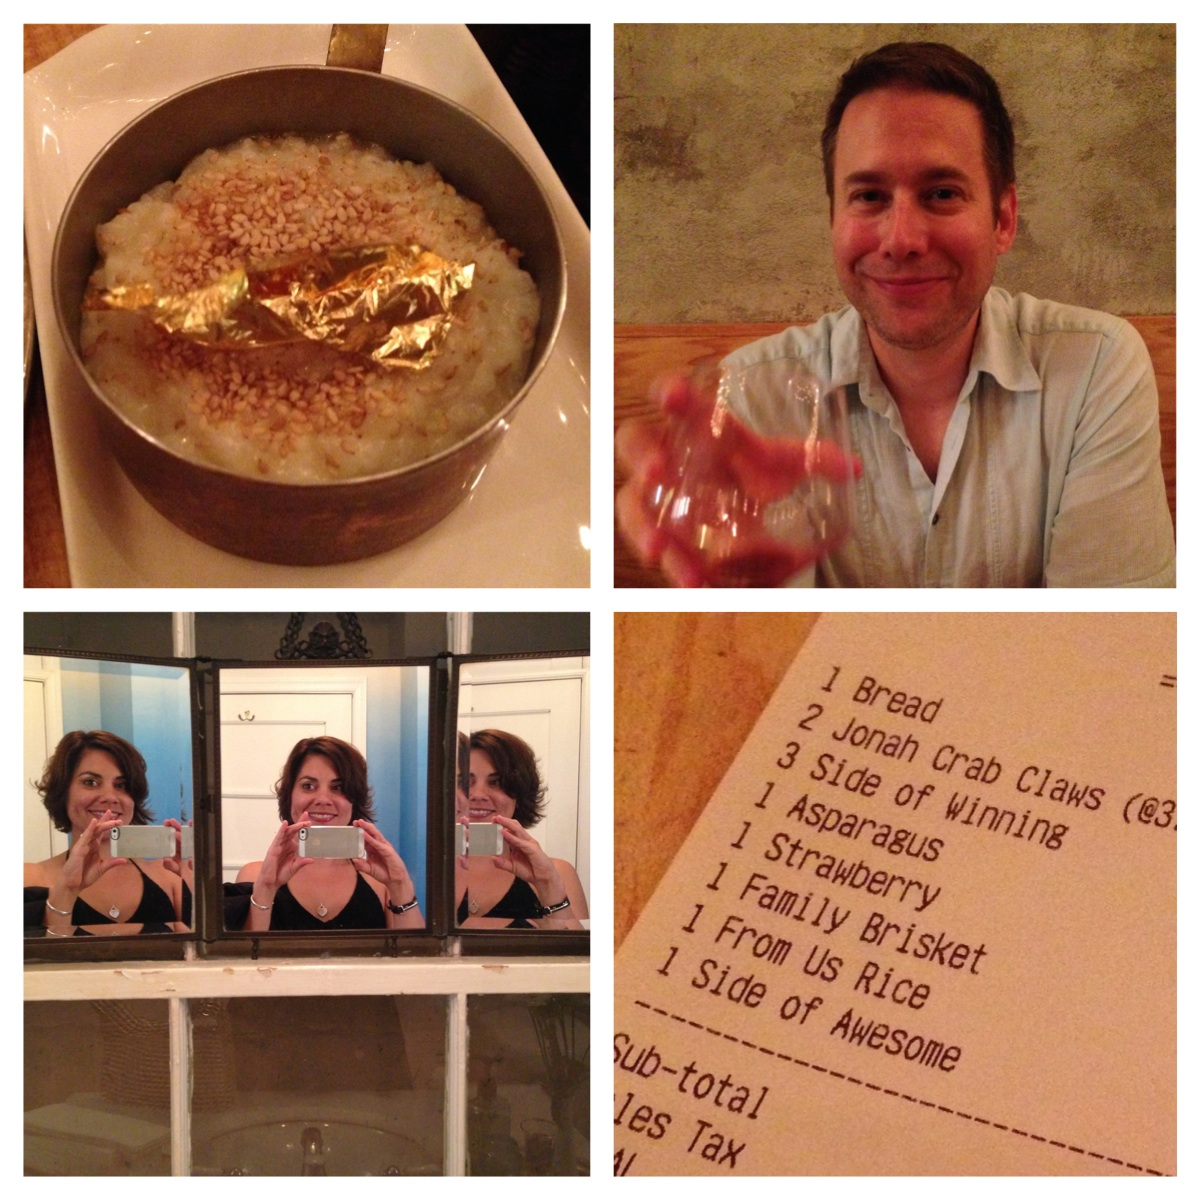 A bit of whimsy at Rose's Luxury: Gold-leaf in the rice, my excellent dinner date, the bathroom mirror, fun receipt